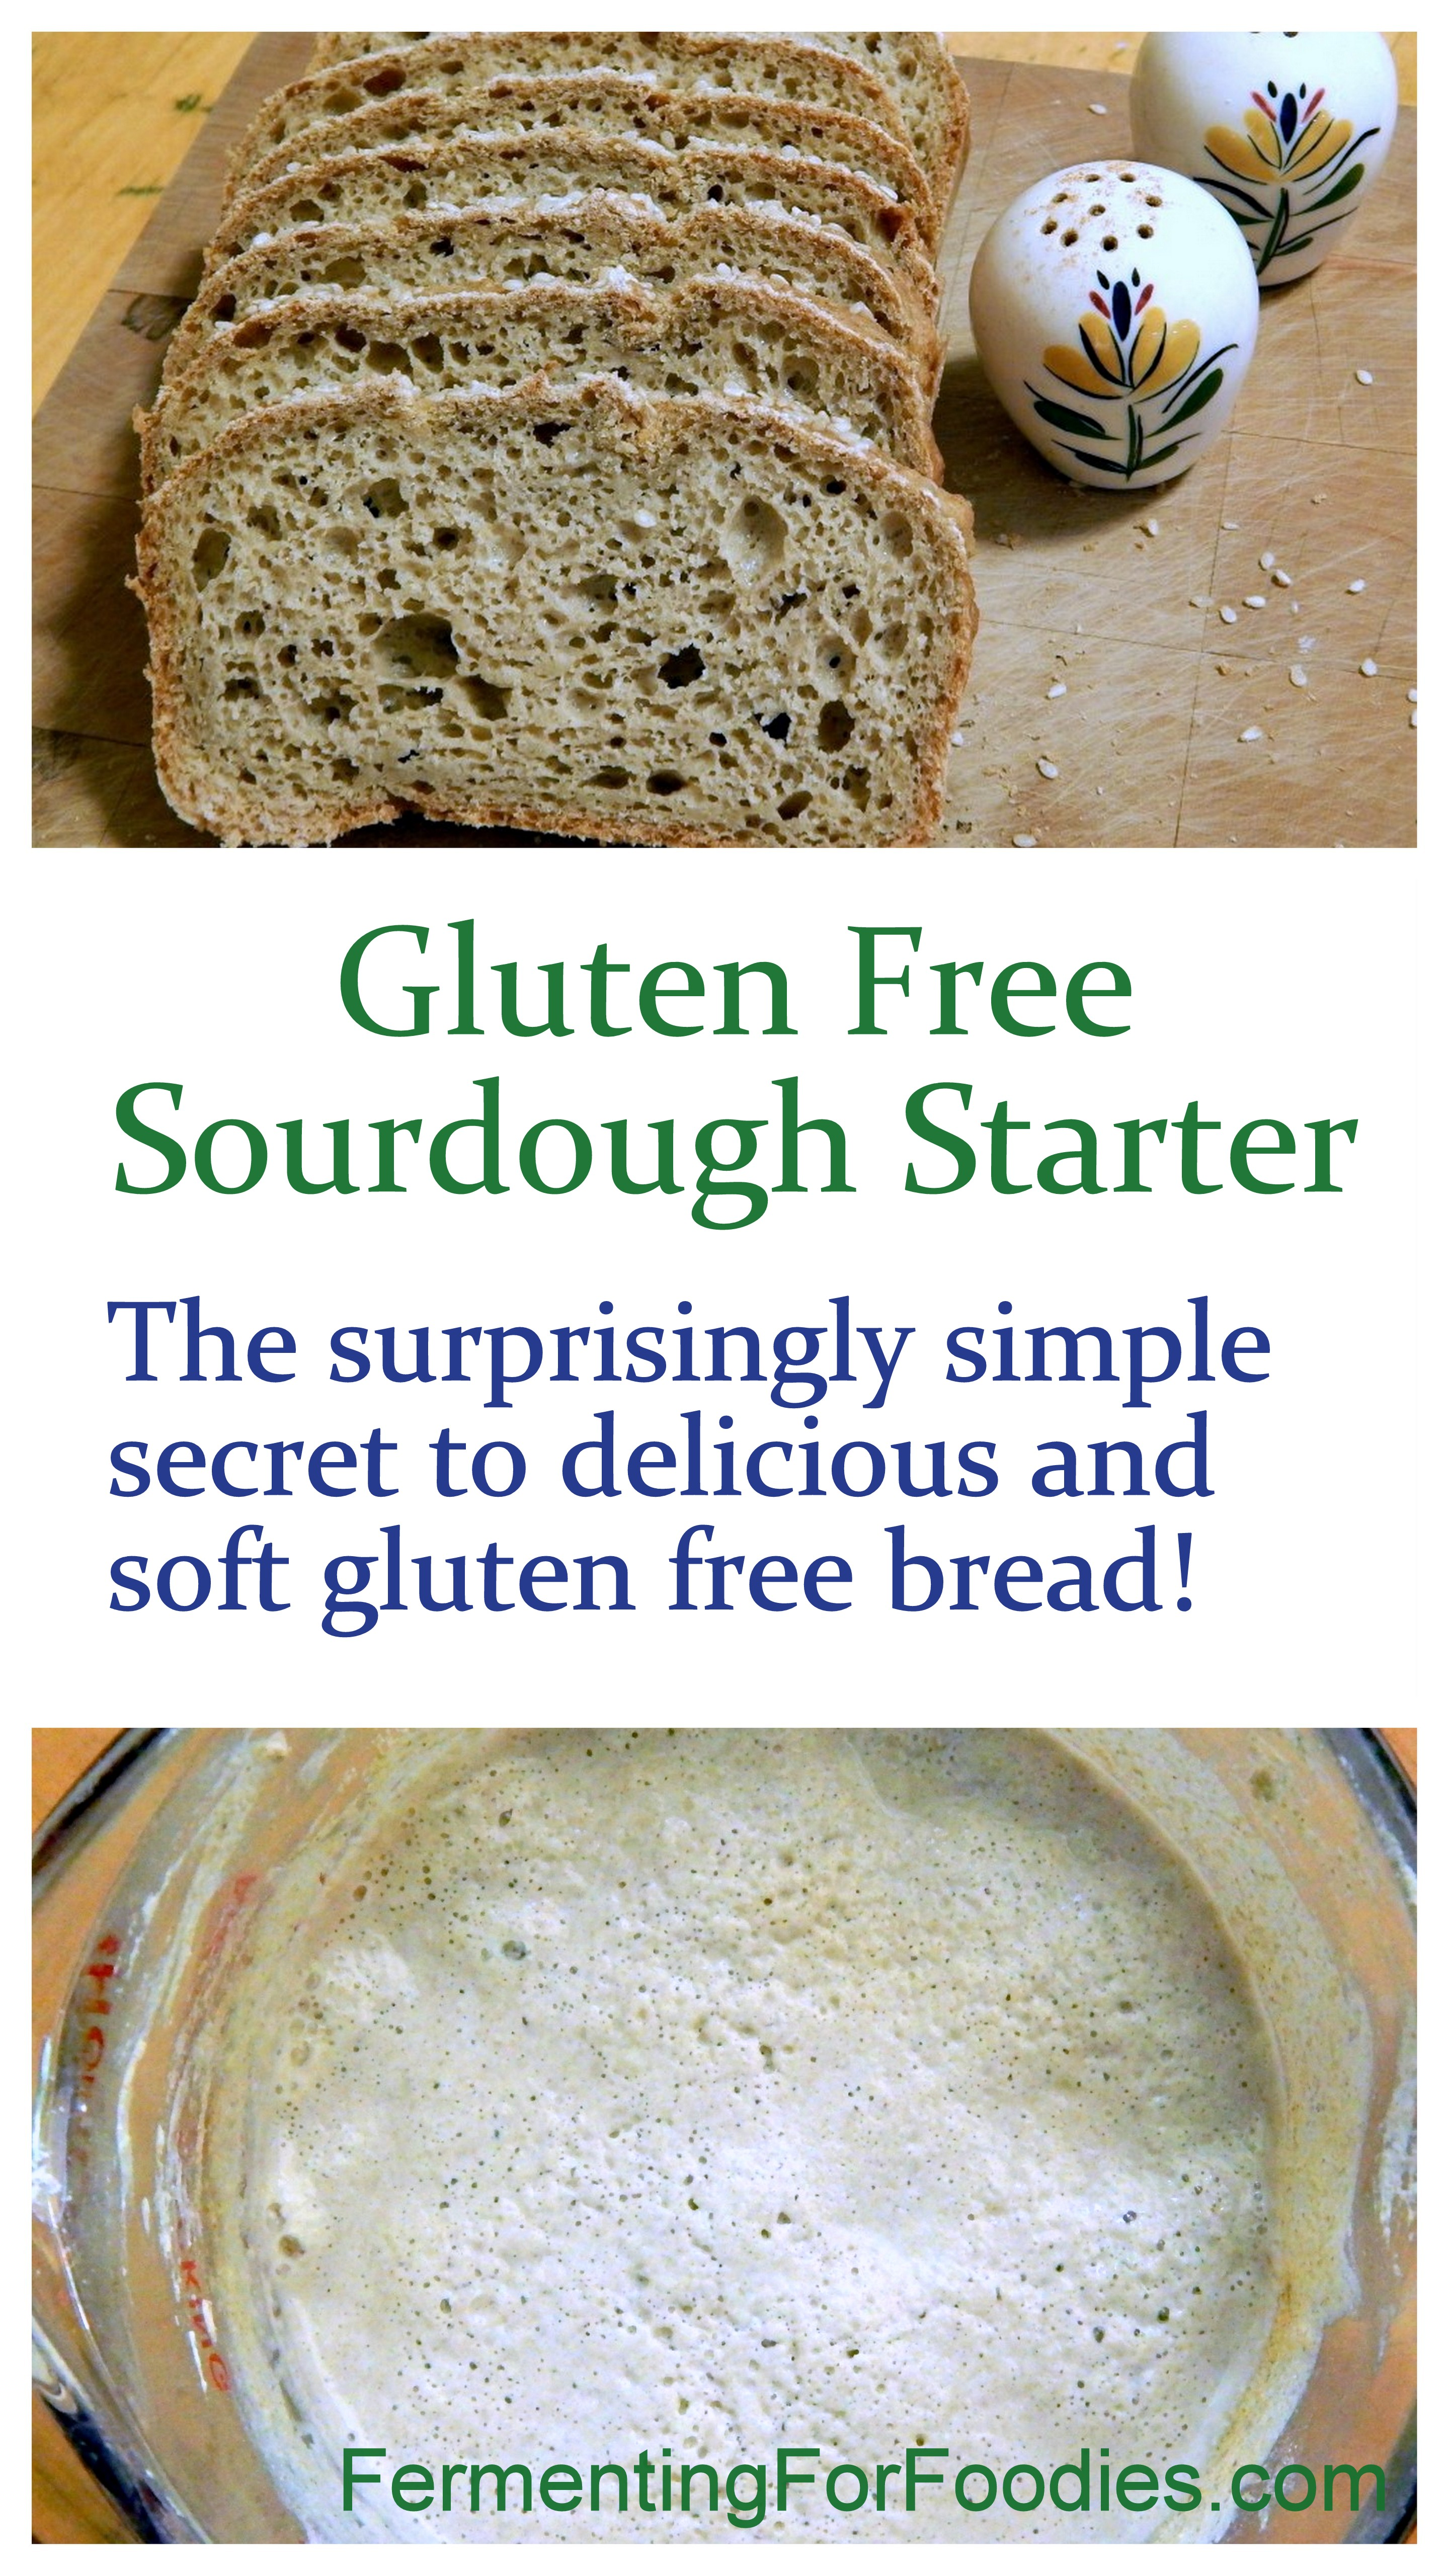 How to use sourdough starter to make delicious gluten free bread.